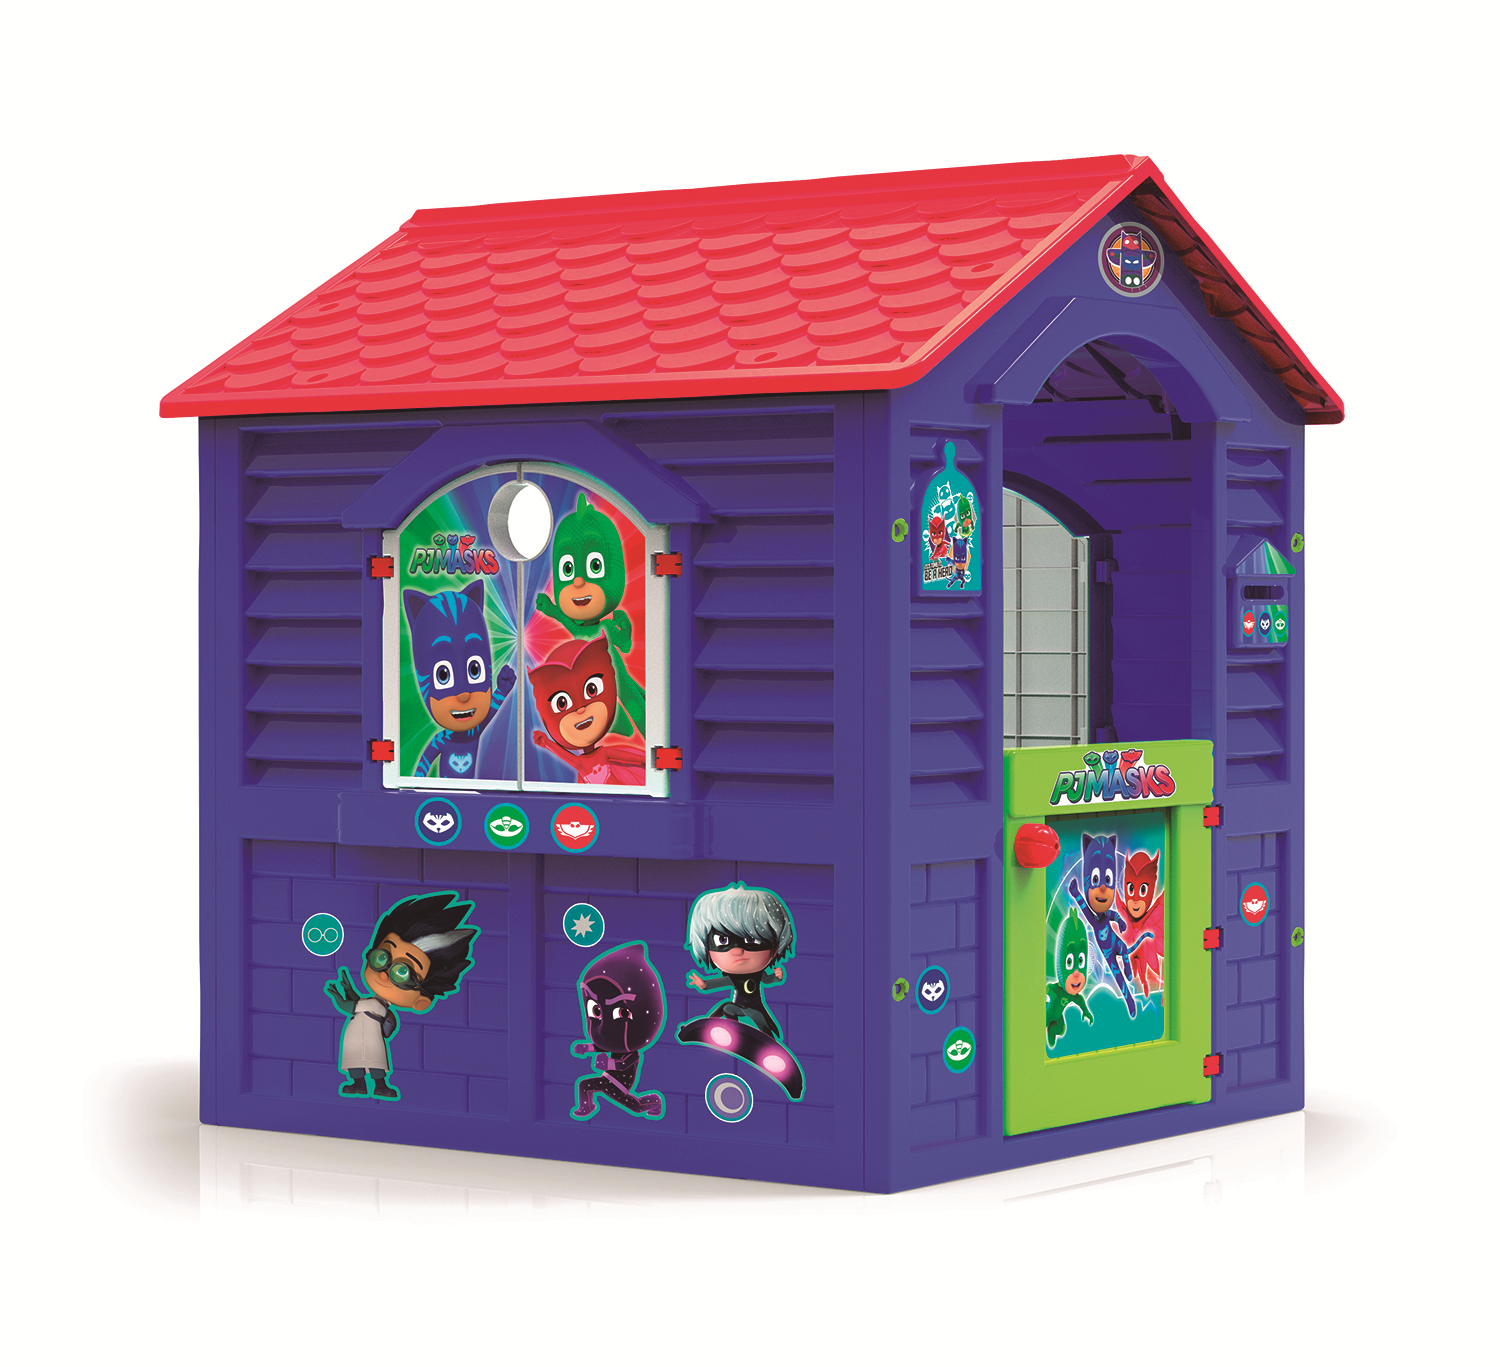 PJ Masks - Casita (Fábrica de Juguetes 89577.0): Amazon.es ...